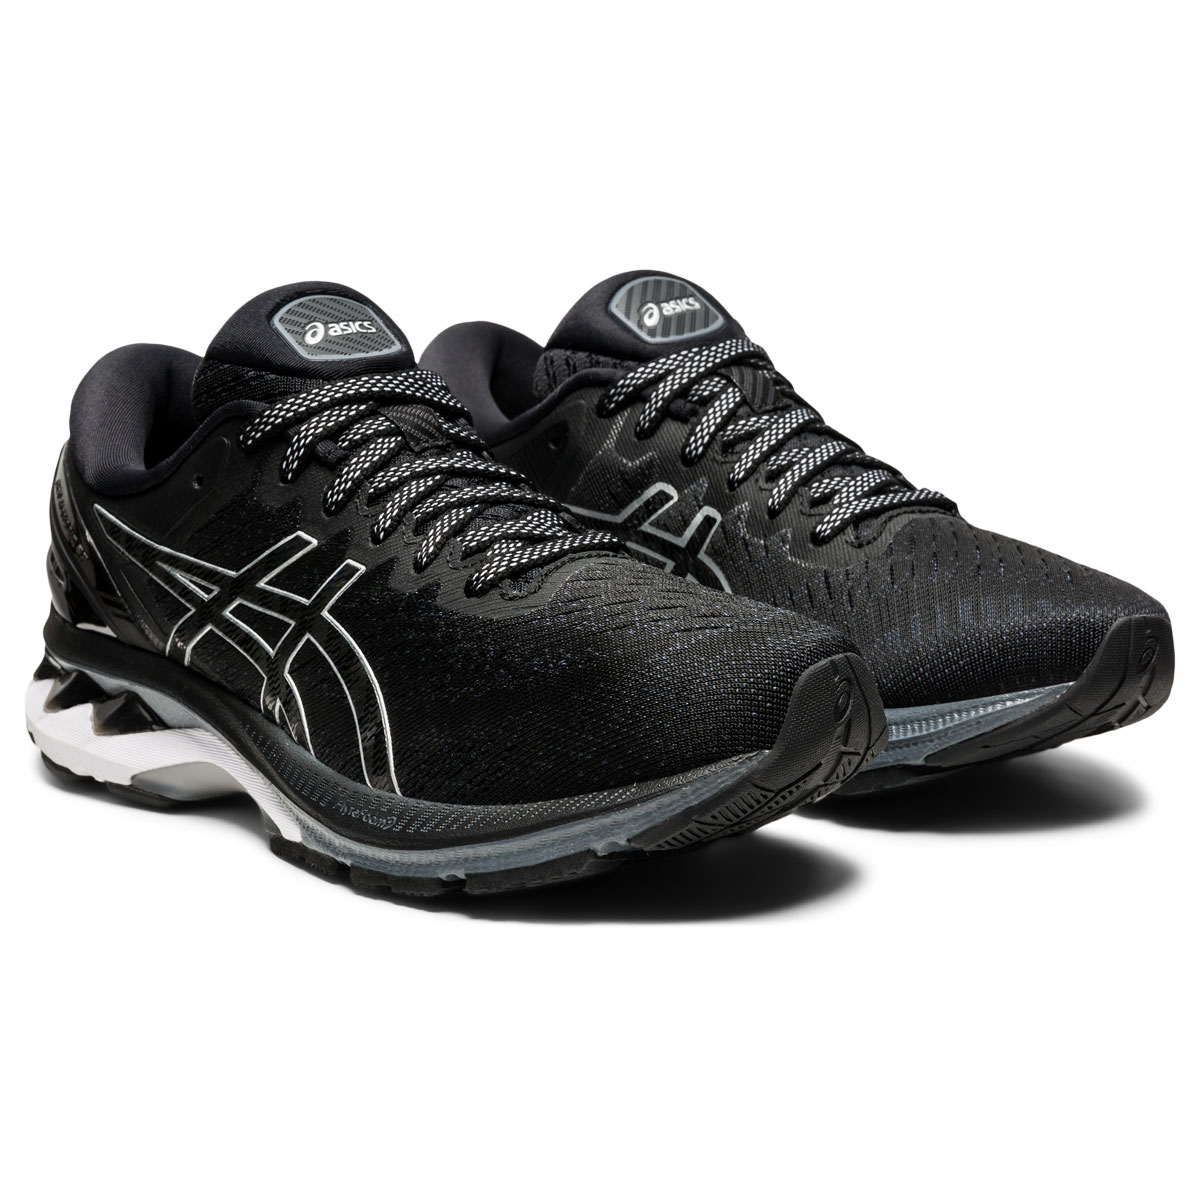 Women's Asics GEL-Kayano 27 Running Shoe - Color: Black/Pure Silv (Regular Width) - Size: 5, Black/Pure Silv, large, image 3